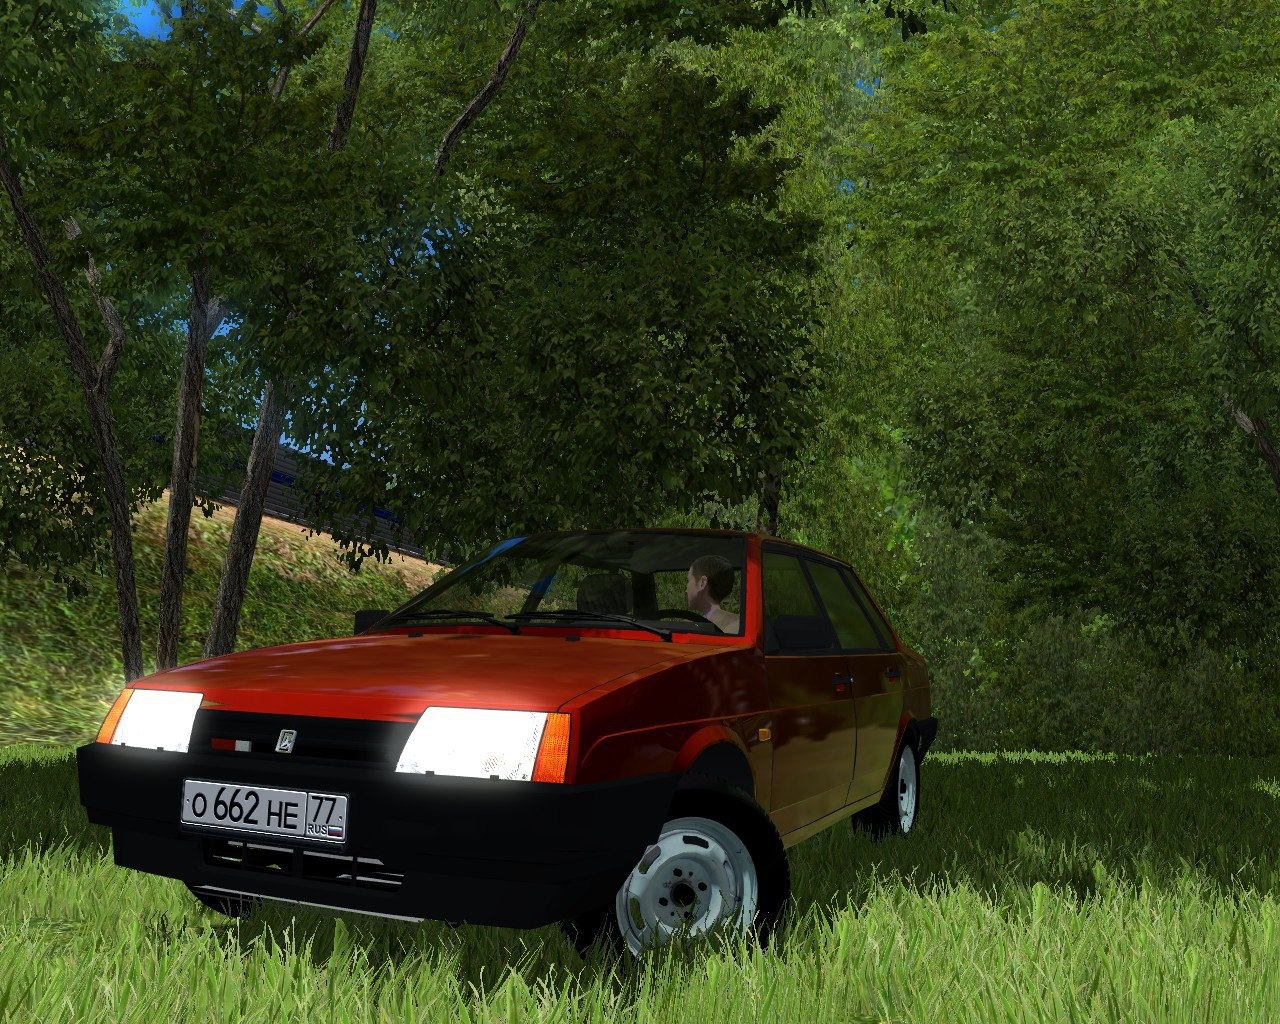 Lada 21099 для City Car Driving 1.5.0 - 1.5.2